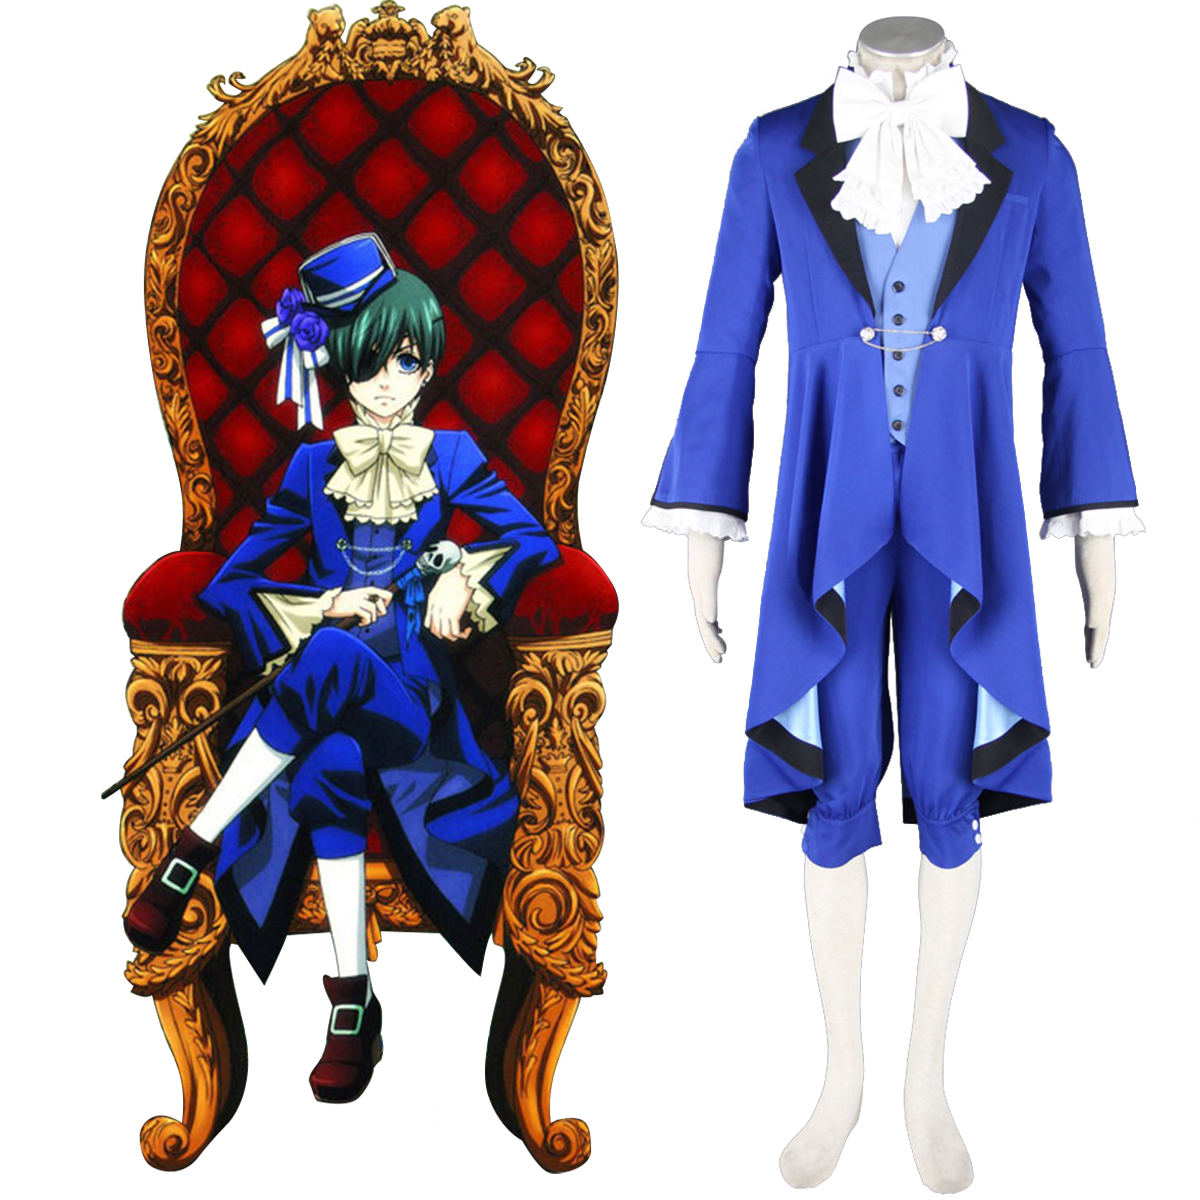 Black Butler Ciel Phantomhive 18 Anime Cosplay Costumes Outfit